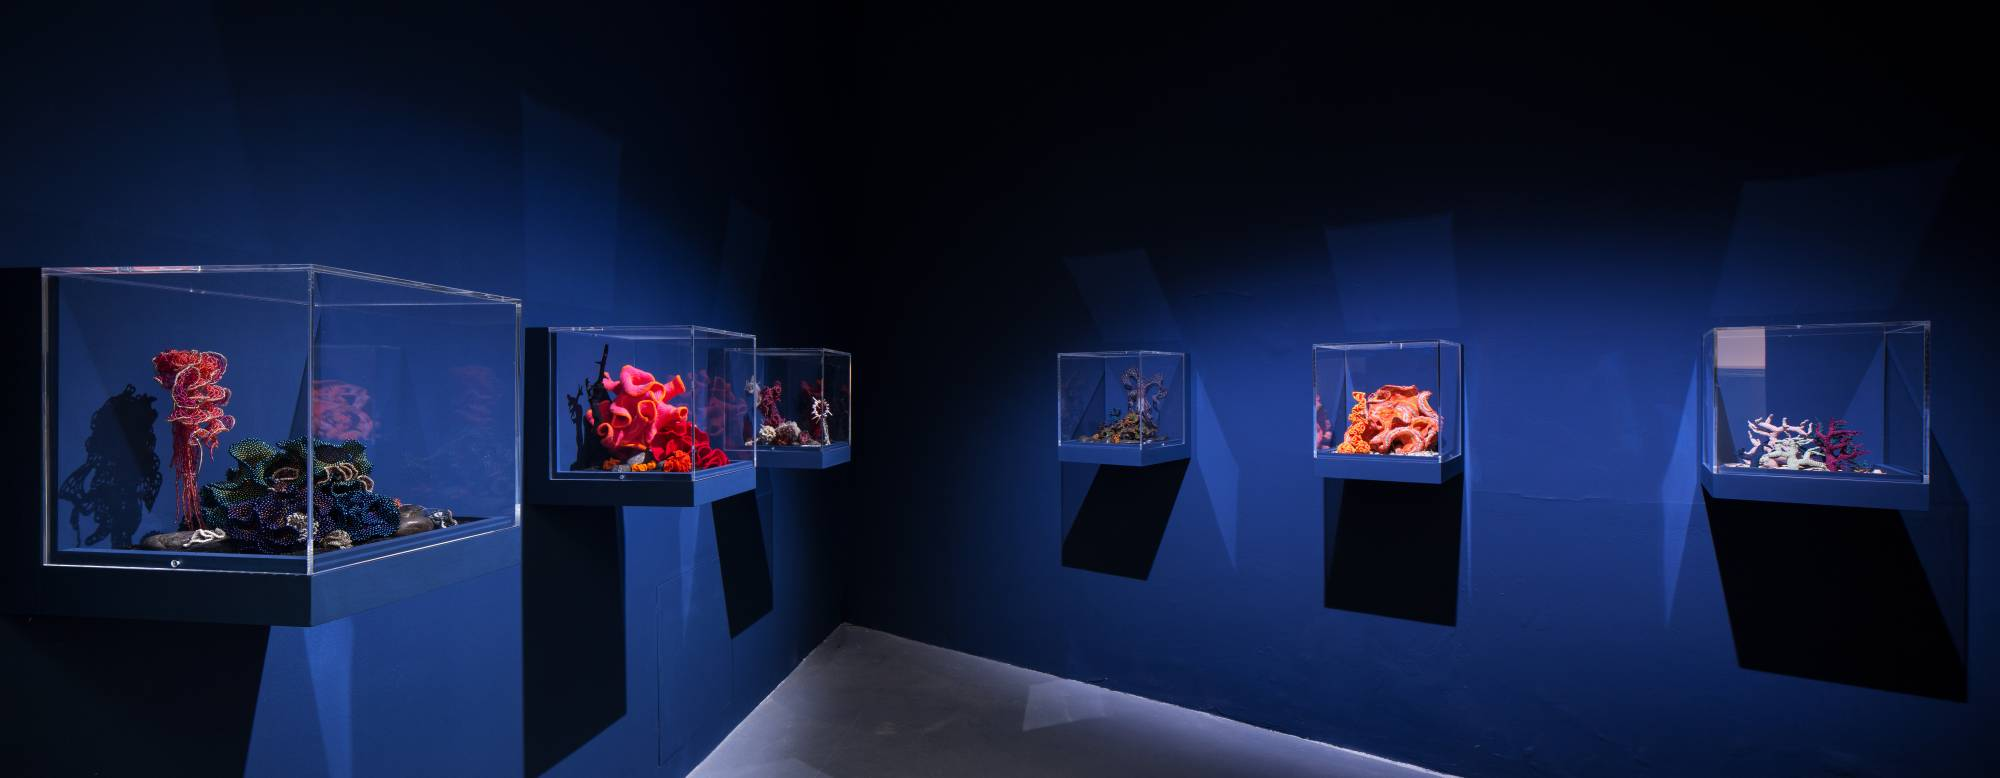 Six reef sculptures in glass vitrines in gallery with striking blue background